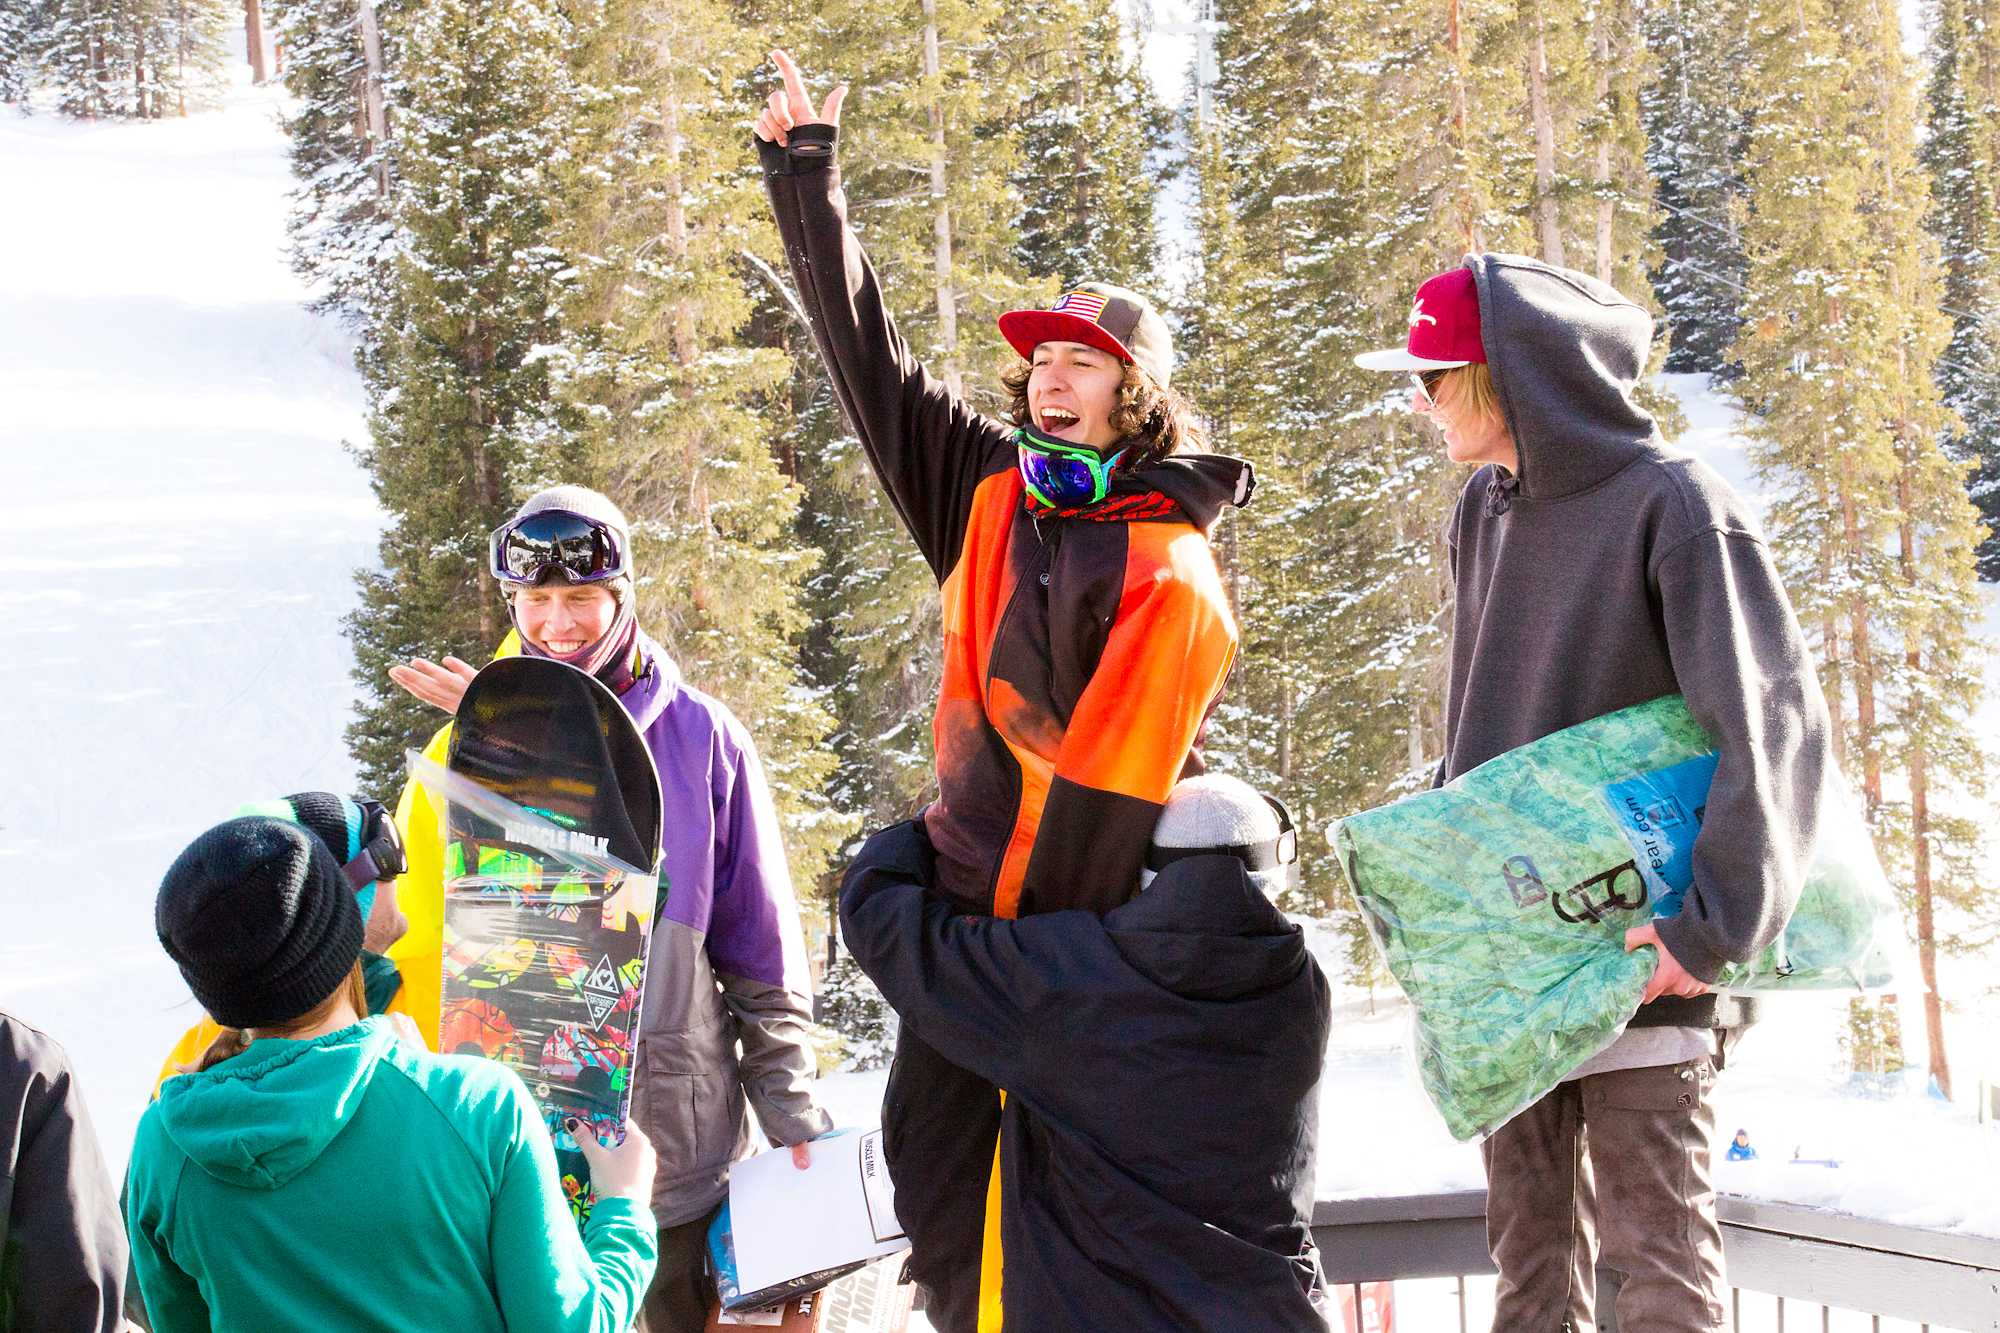 CSU's Dimitri Moreno (middle), Steve Merg (right) and Pierce Cameron (left) stand on their 1st, 2nd and 3rd place podiums respectively at the Snowdown Men's Snowboarding rail jam at Arapaho Basin on Saturday afternoon.